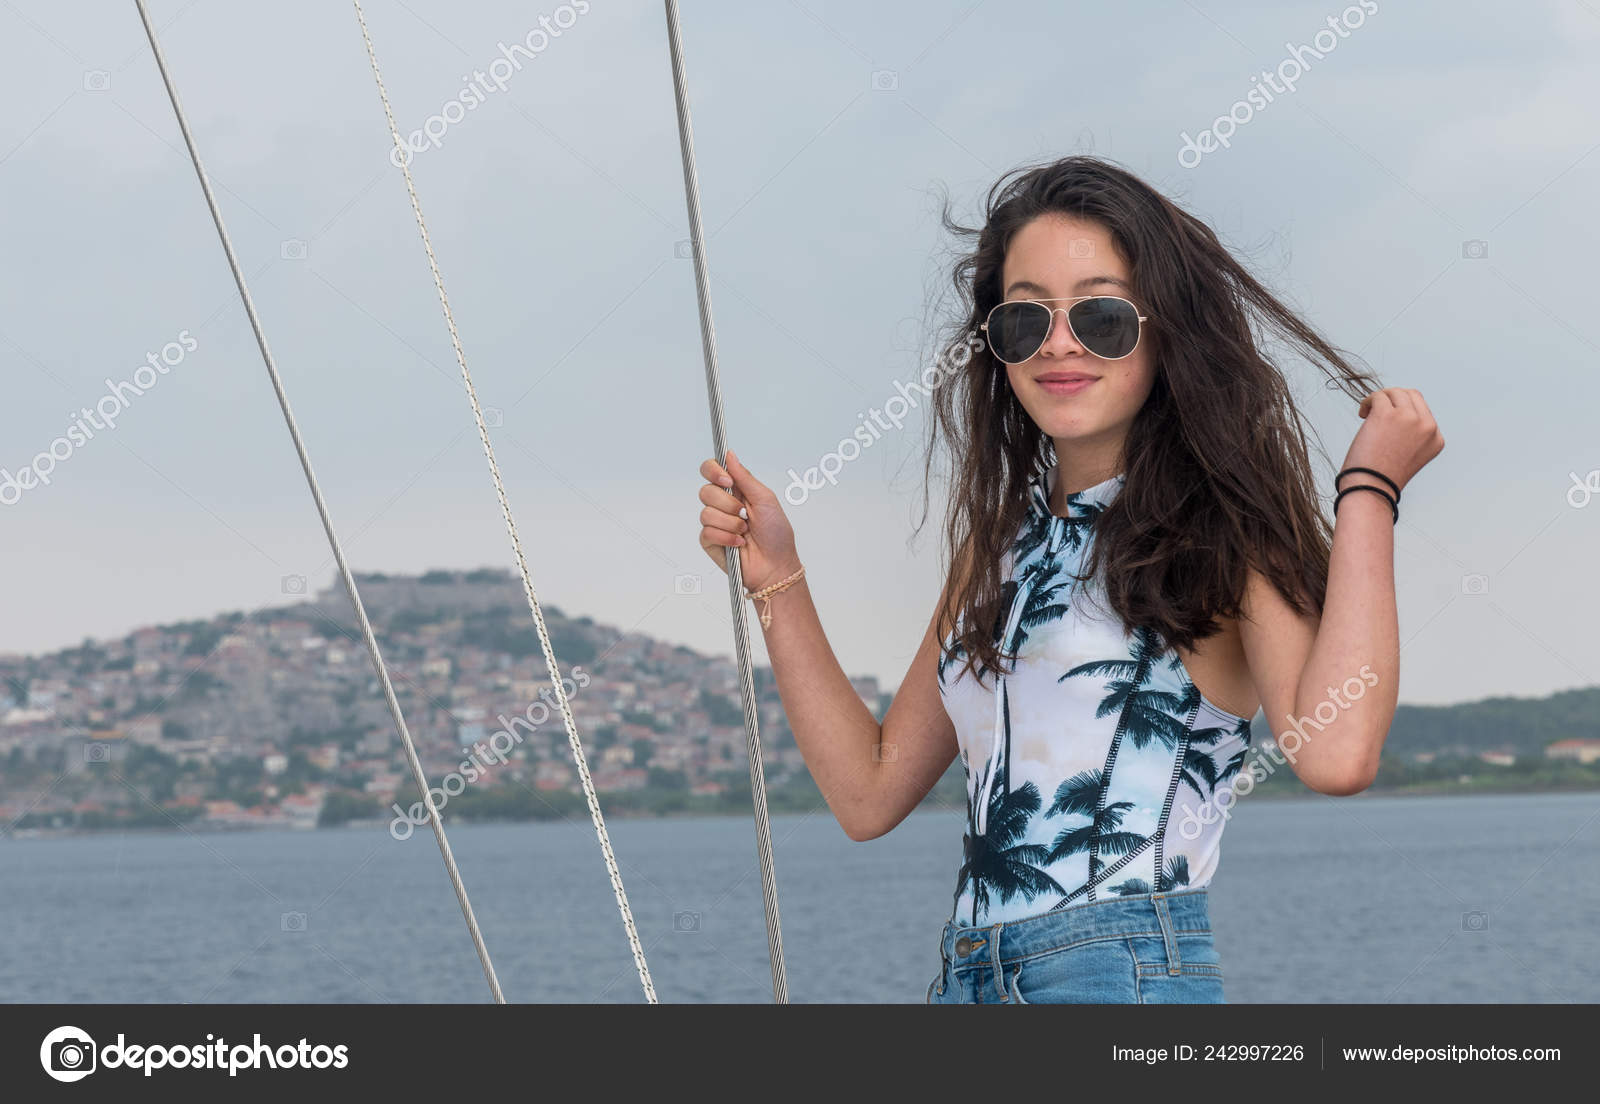 Opinion you girl teen on sailboat sorry, not